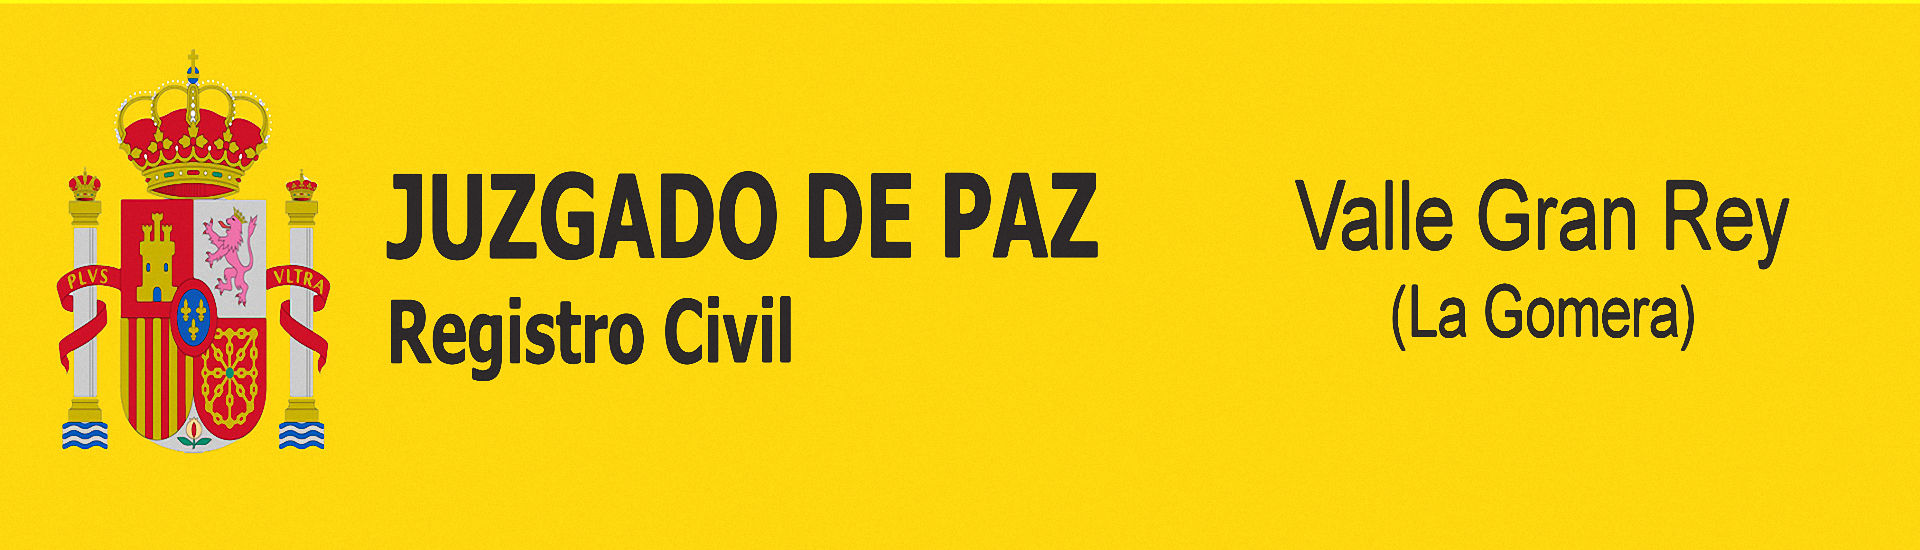 Juzgado de Paz Y Registro Civil